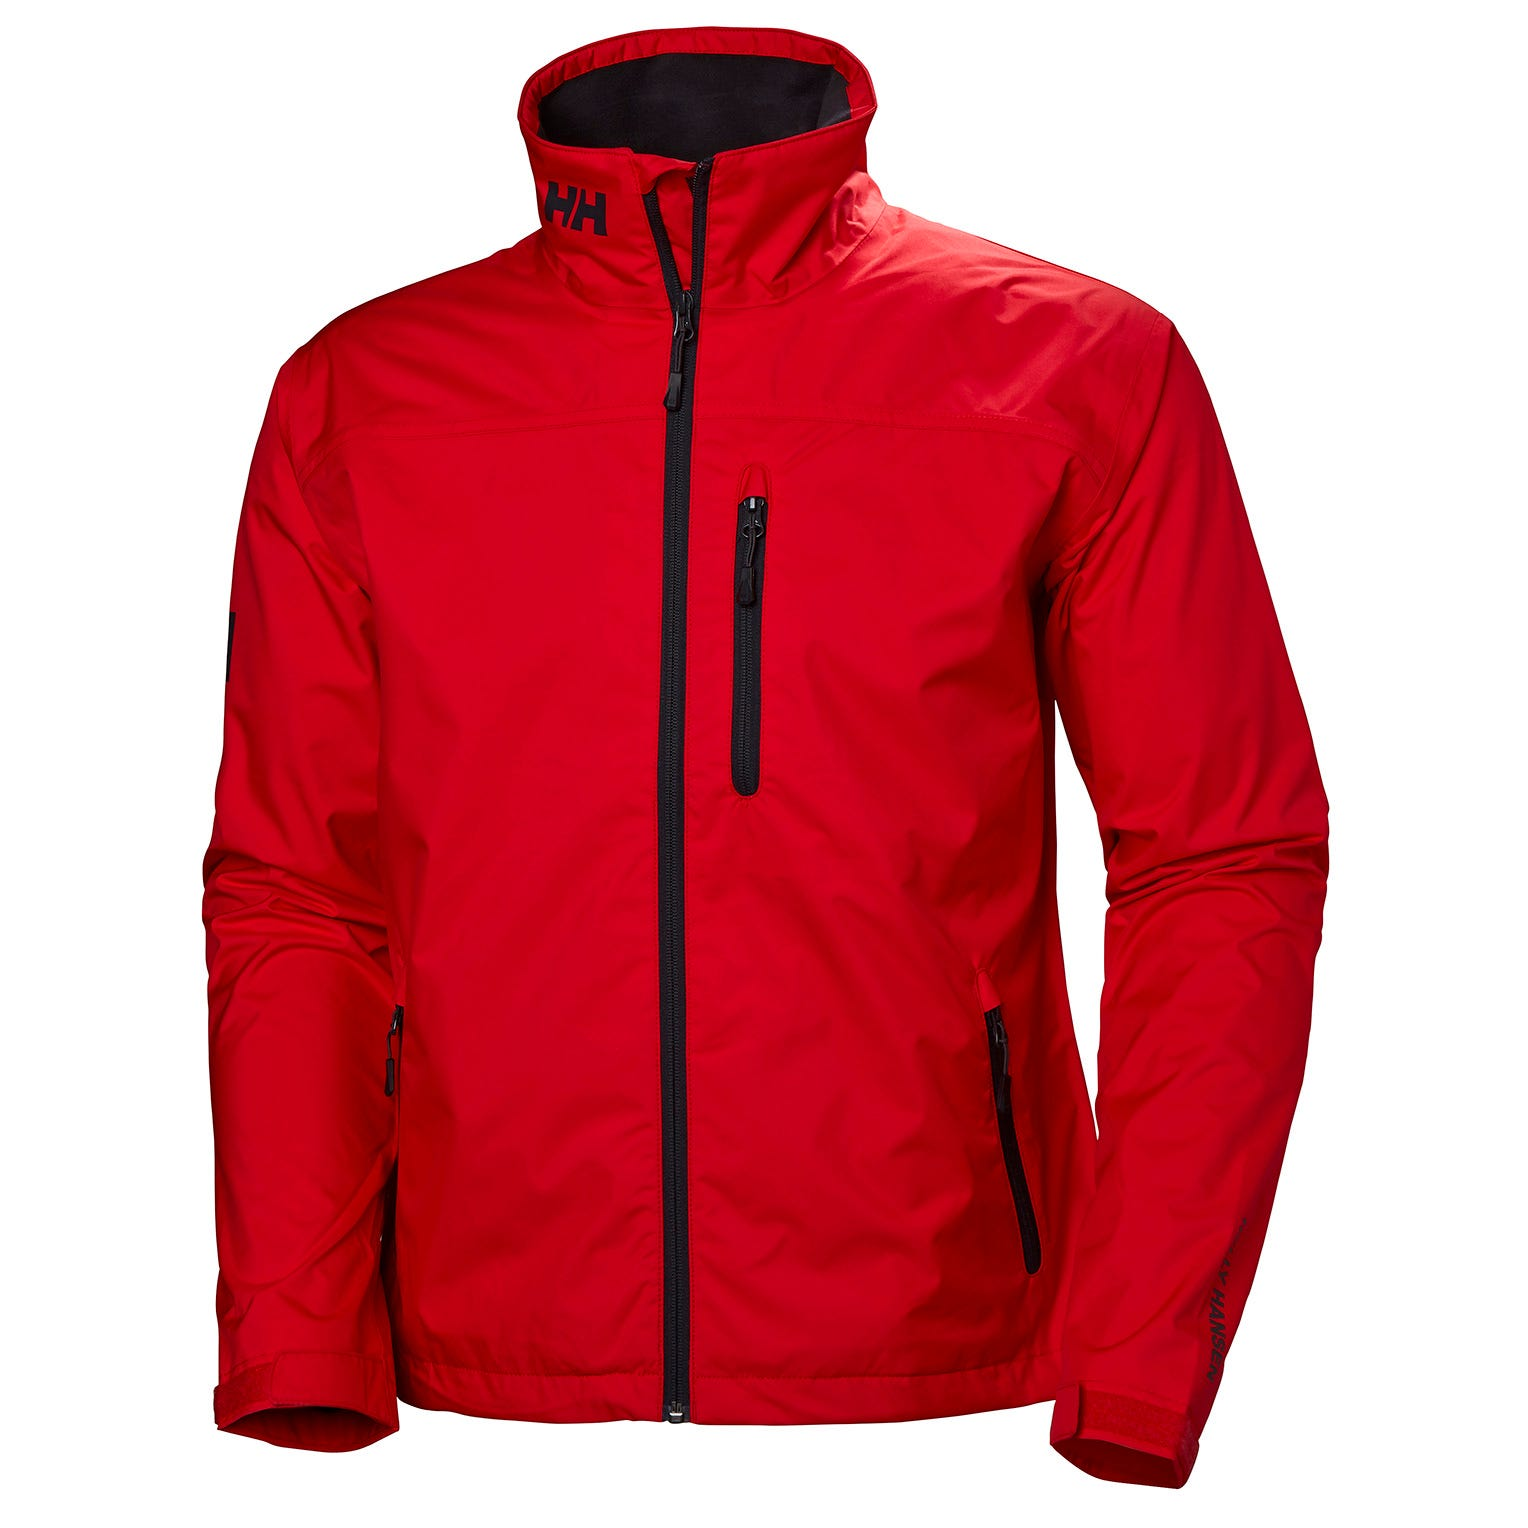 Helly Hansen Mens Crew Sailing Jacket Red S